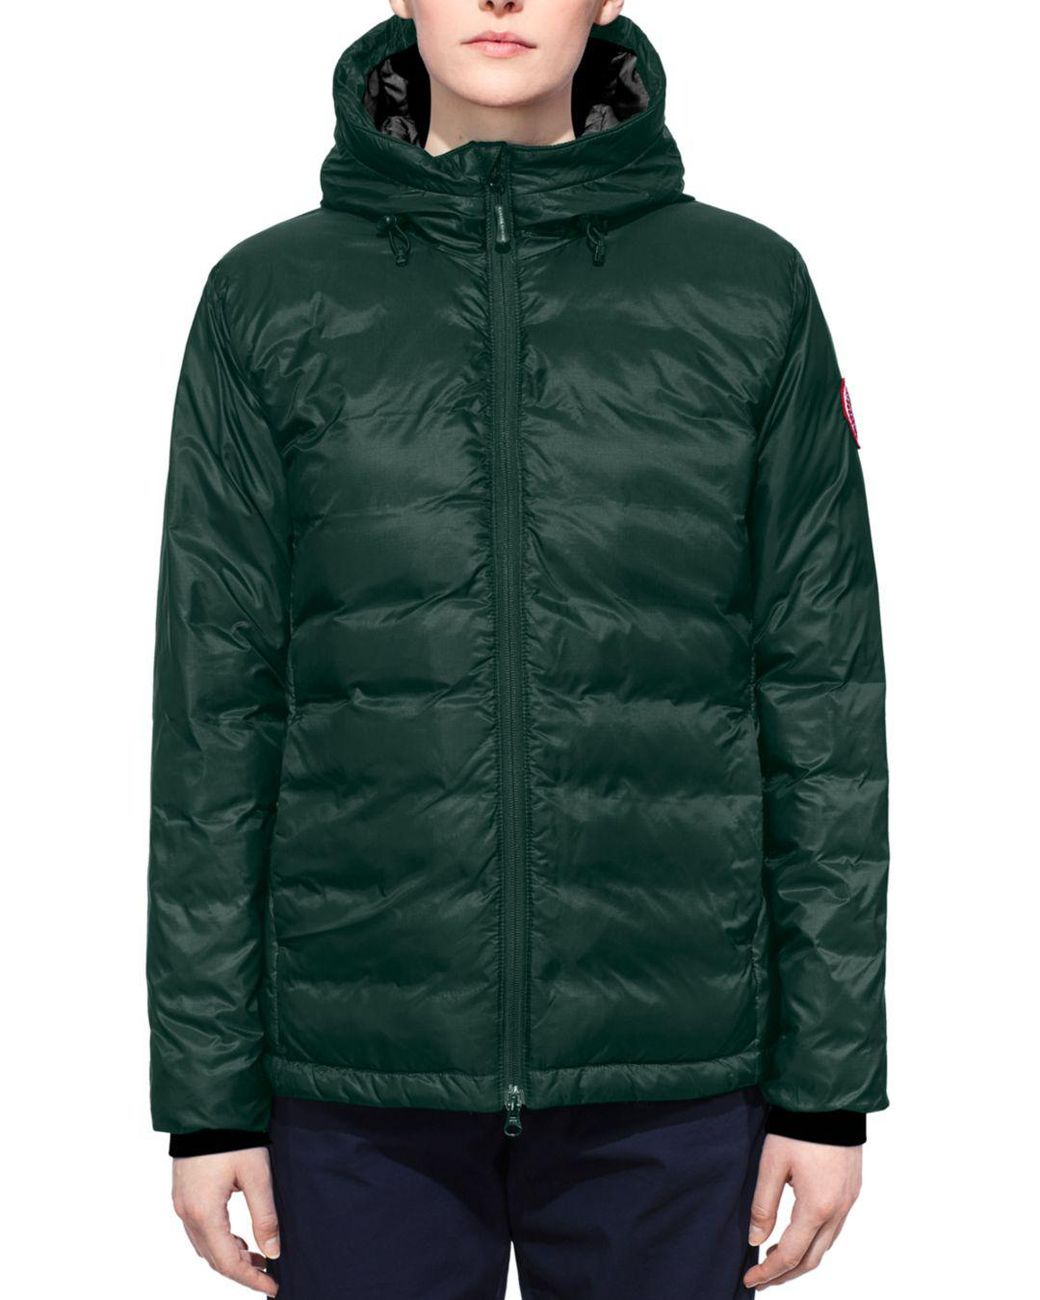 1ed52c4ad Canada Goose Camp Fusion Fit Packable Down Jacket, (2-4p) in Green ...